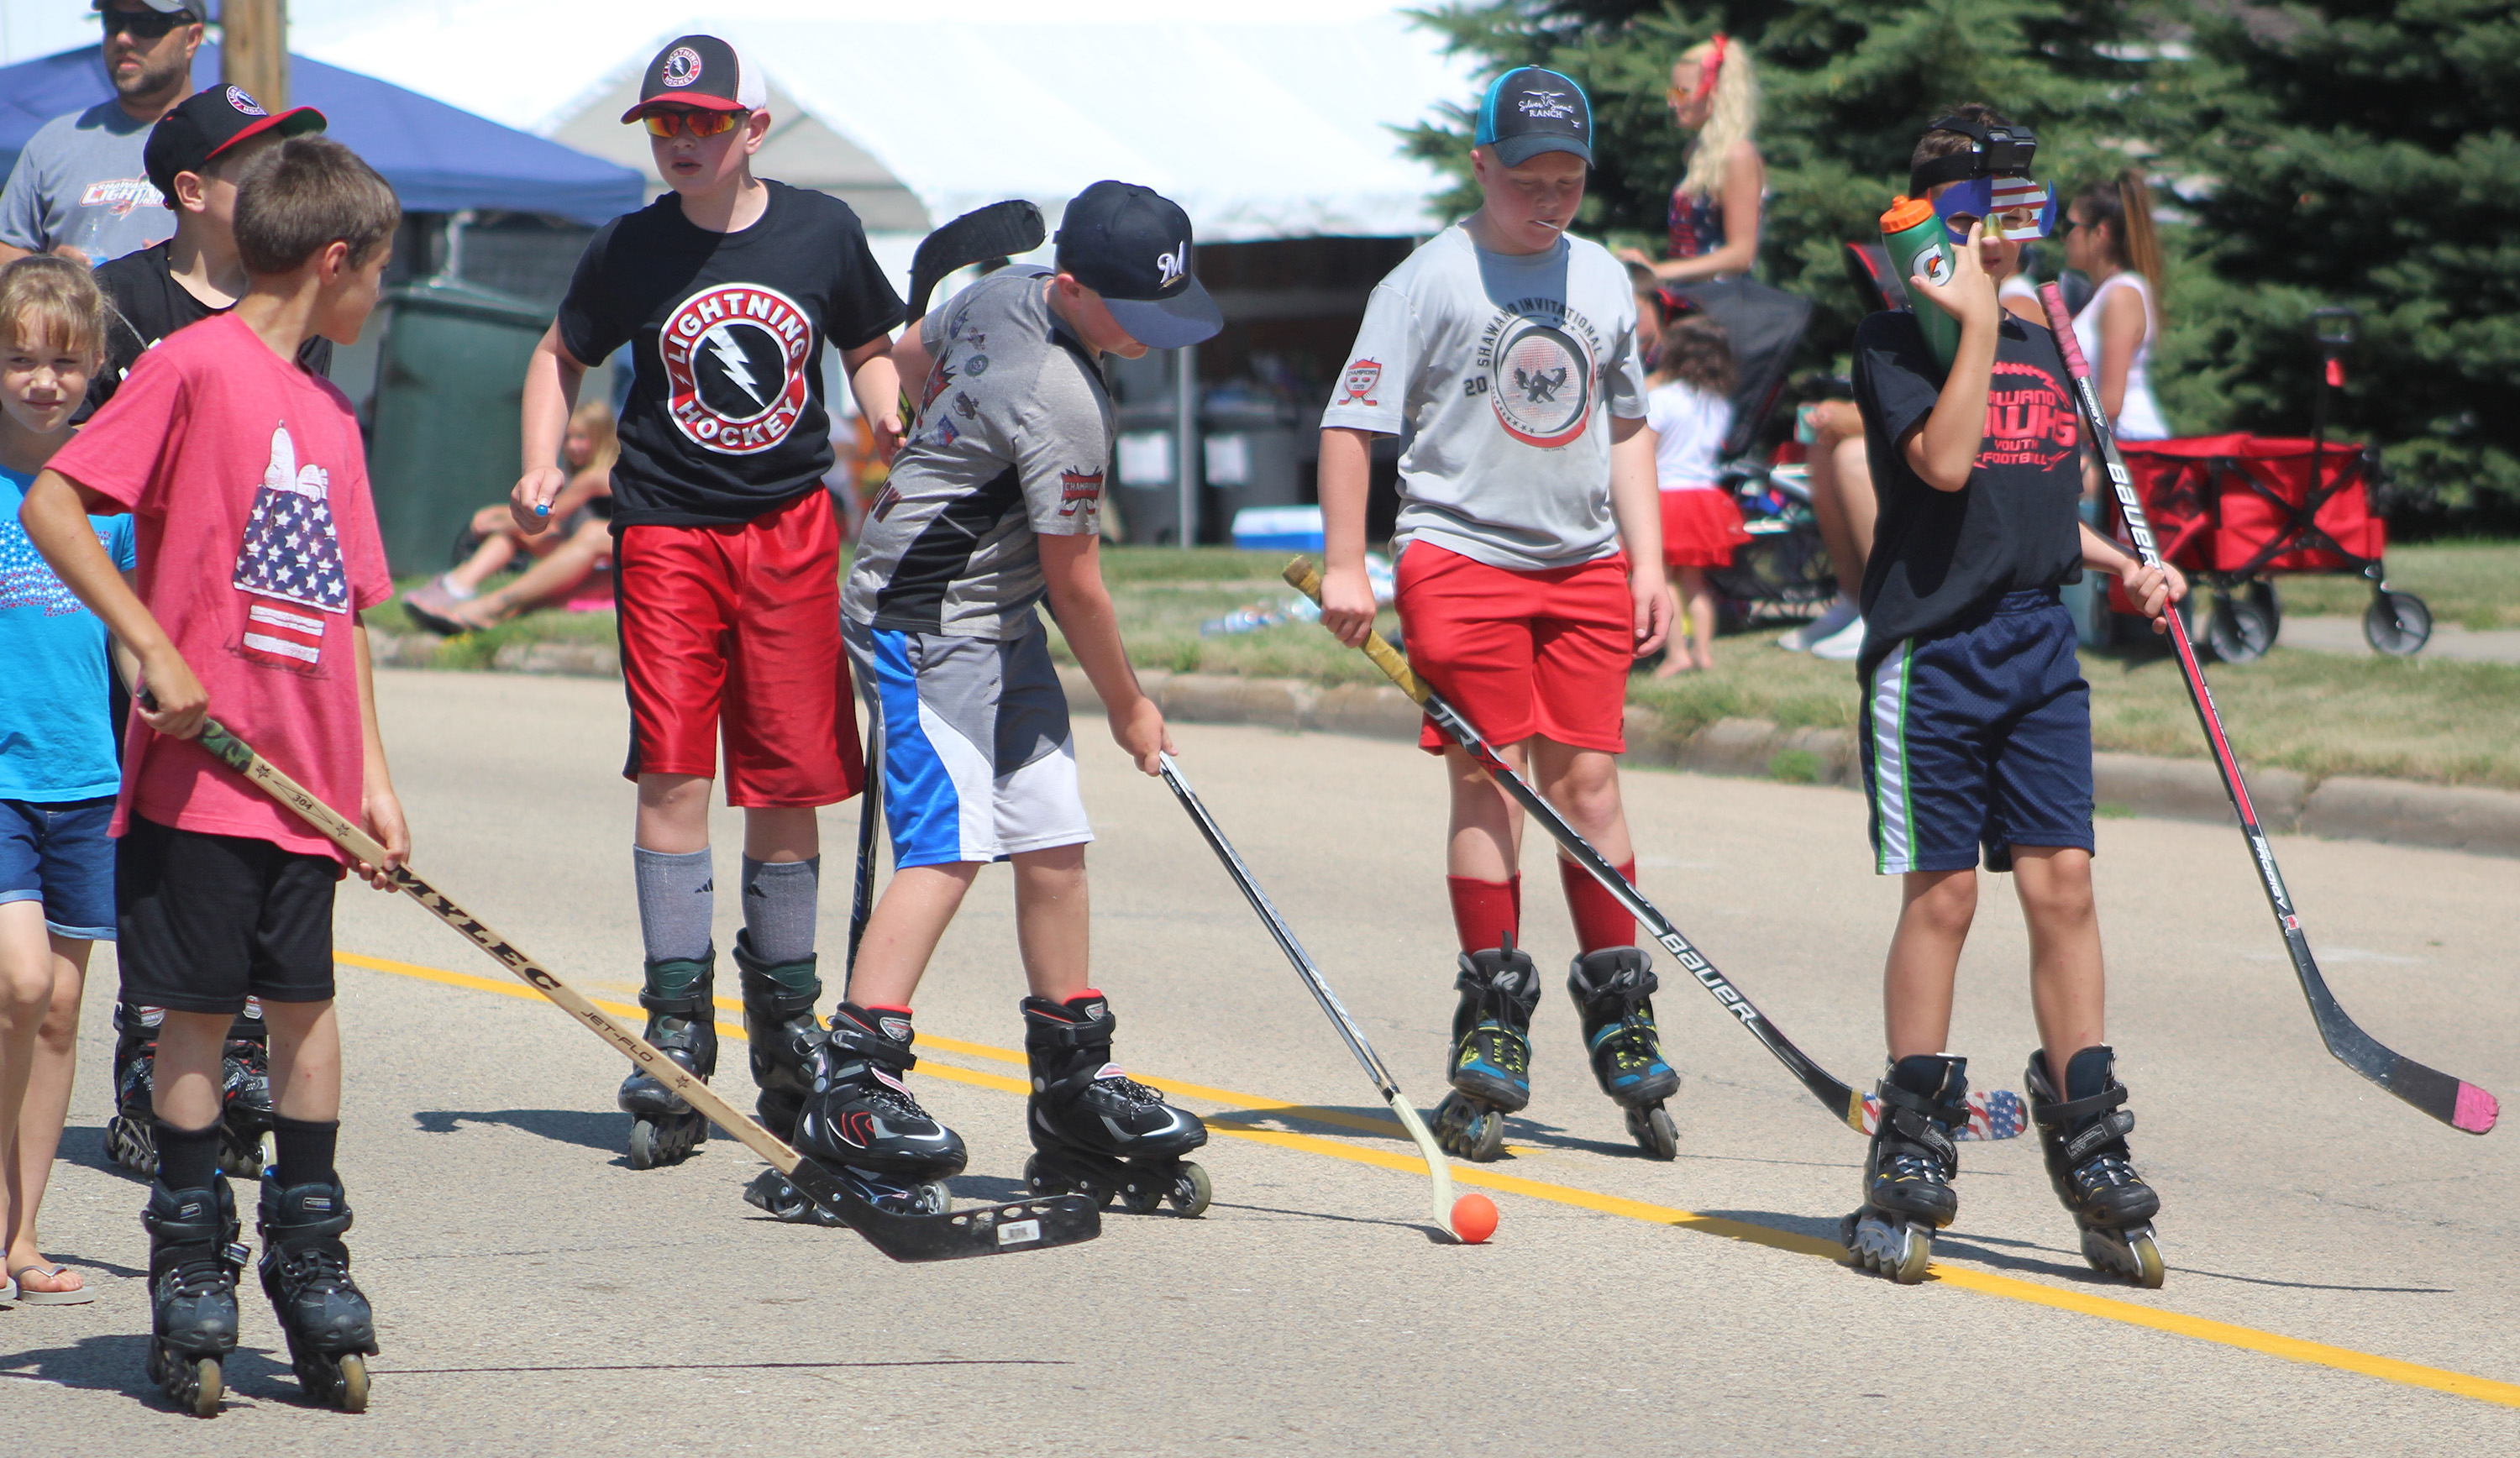 Youth members of the Shawano Hockey League show off their skills as they skate along the Independence Day parade route Saturday in Bonduel.Lee Pulaski | NEW Media